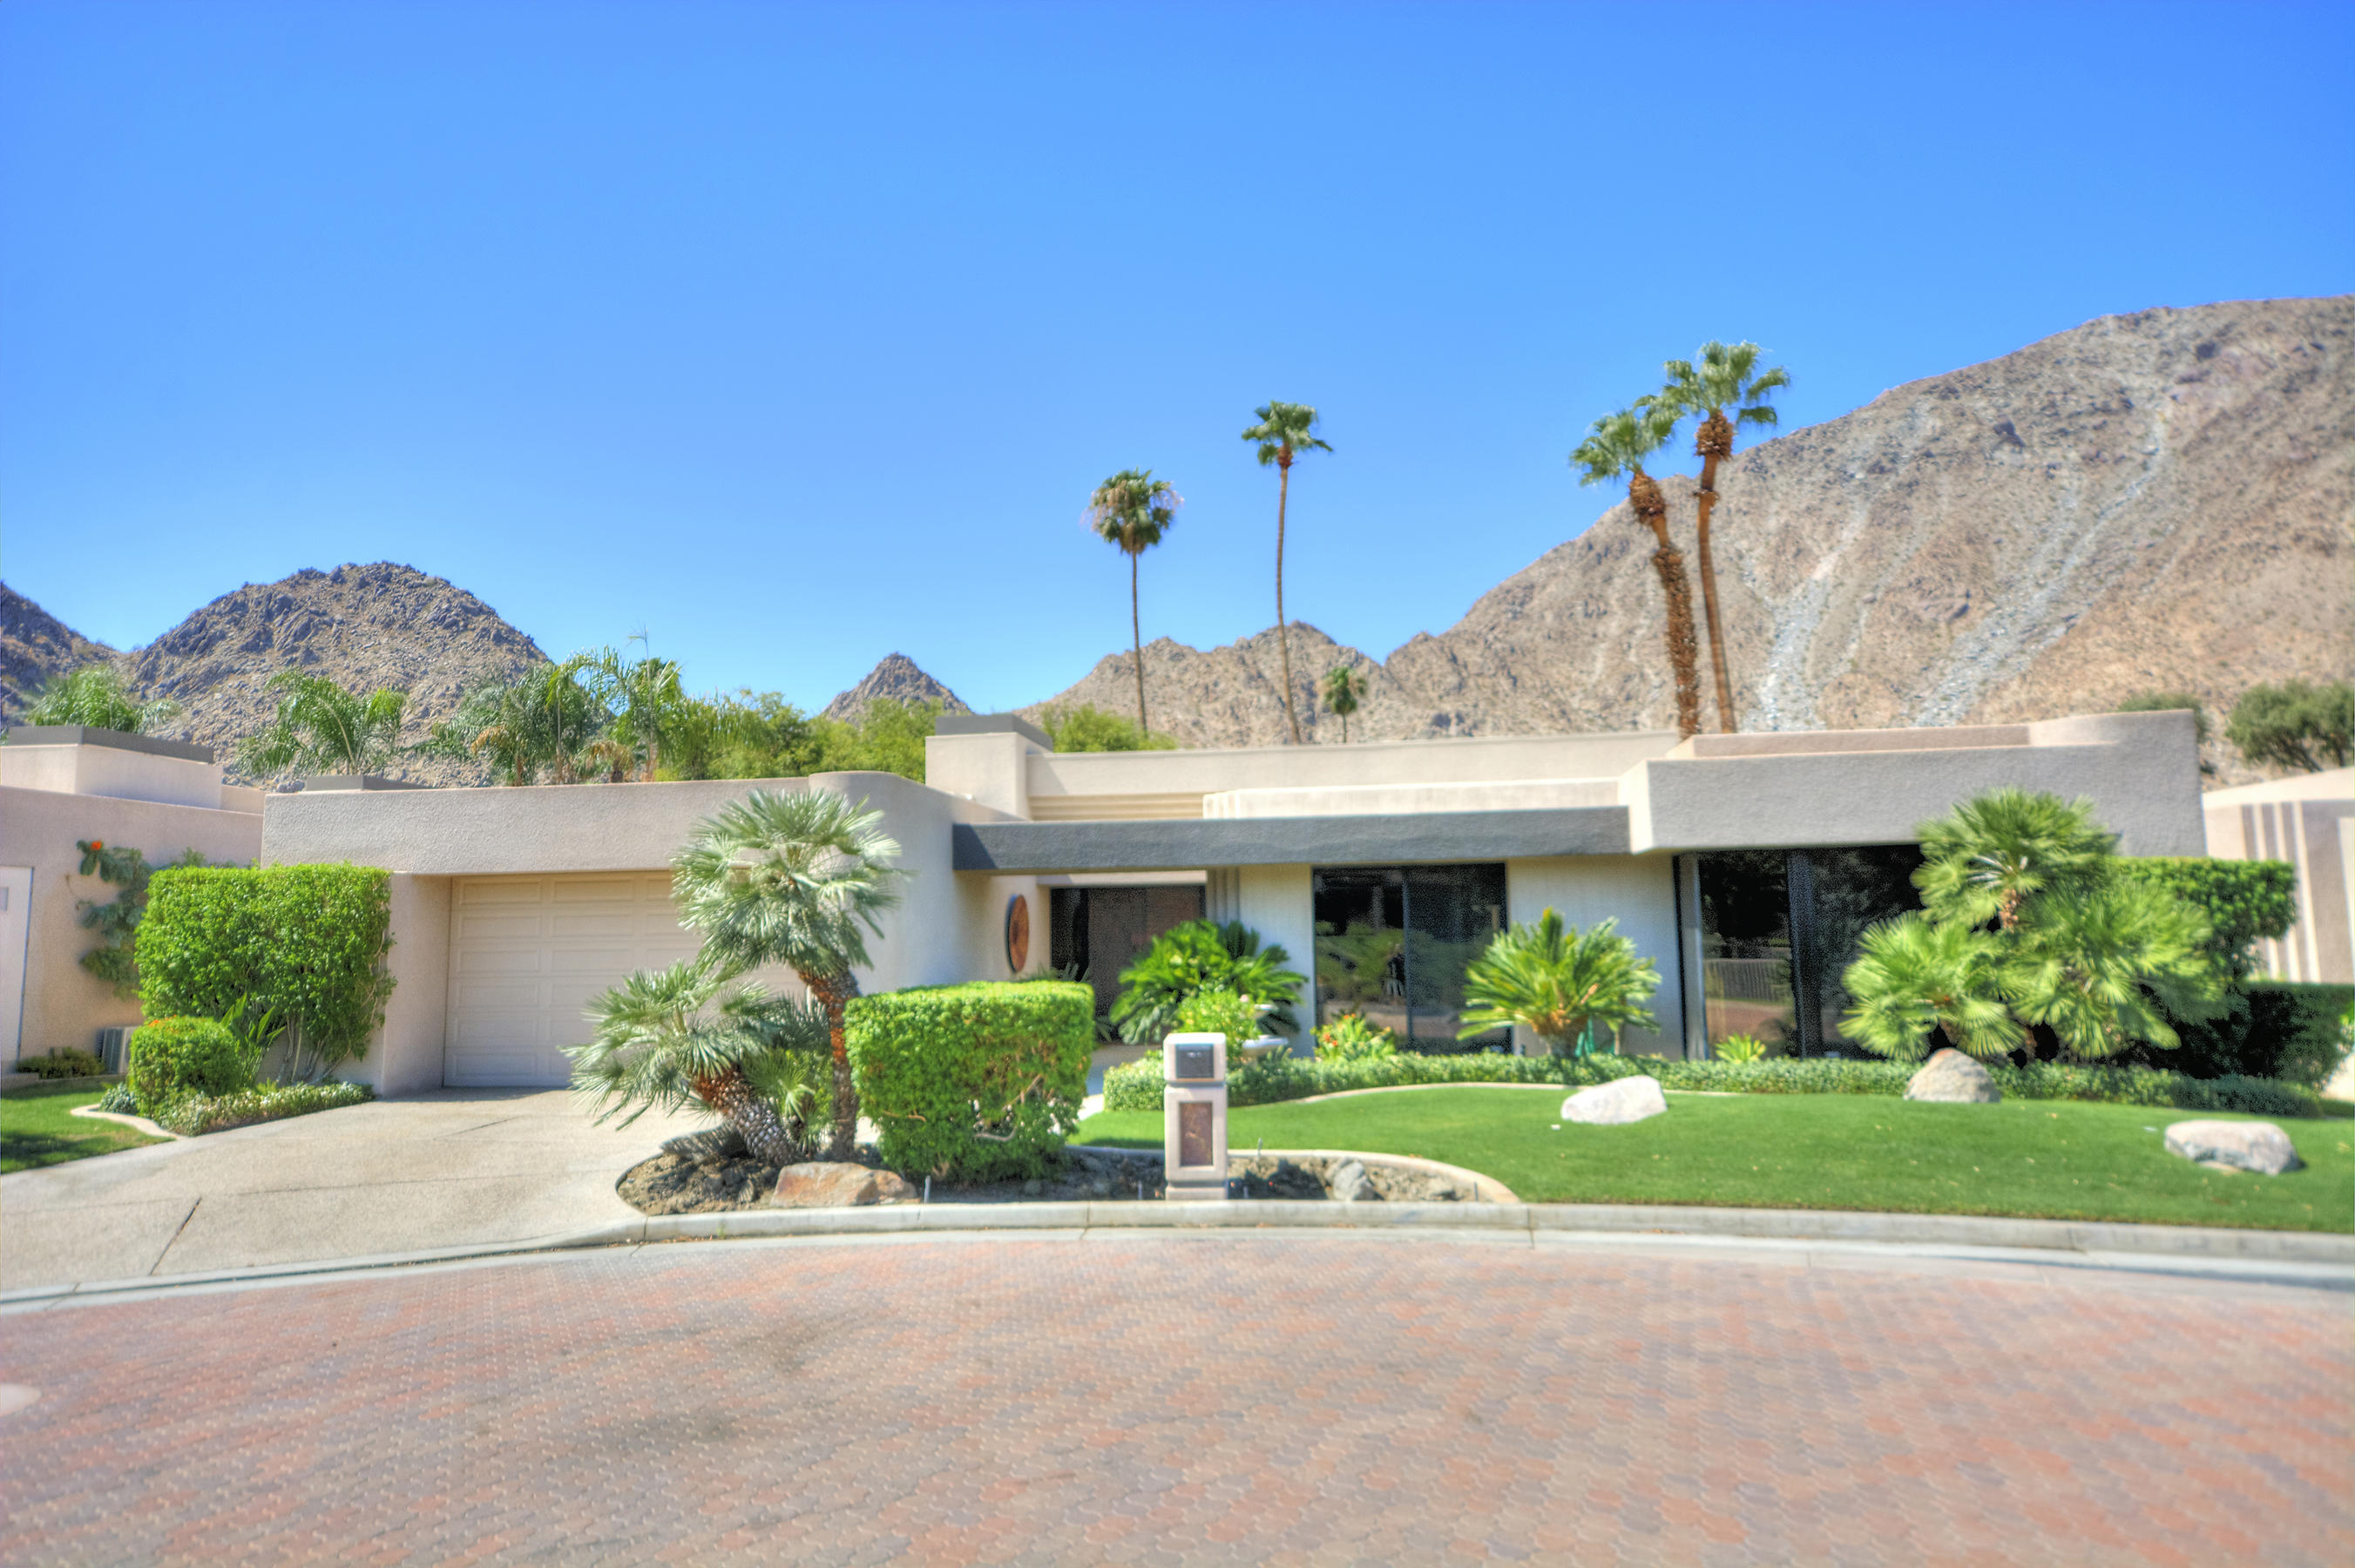 Idyllic location w/ south  panoramic mountain  views, 3739 Sq.Ft. 3 bed, 3 bath home overlooks 15th Fairway of IWCC Cove Course.  Enter guard gated Mountain Gate & arrive at private gated entry of Cove Pointe Community, luxurious enclave of 17 homes. HOA fees pay for beautiful community pool, spa & landscaping. Home is on quiet cul-de- sac, south facing & picturesque views w/ extended covered patio & built-in BBQ island for outstanding entertainment.  Dark porcelain tiled floors give illusion of hardwood floors & high ceilings throughout.  Grand Foyer entry to Great Room w/ fireplace and Formal Dining Room & look straight out, glass sliders & clerestory windows showcase the mountain views. King-sized Wet Bar with granite countertops, bar seating, lots of storage, wine cooler, bar refrigerator, ice maker, mirrored & glass shelves with incredible mountain views. Gourmet Kitchen & informal Dining area are spacious & include granite countertops, two sinks, large island & built-ins, bar seating, & large pantry. Private  Master Bedroom has  gorgeous views & marble fireplace. Master Bath w/marble counters, jet spa, dual vanities, and closets.  Guest Rooms have built-ins & walk in closets.